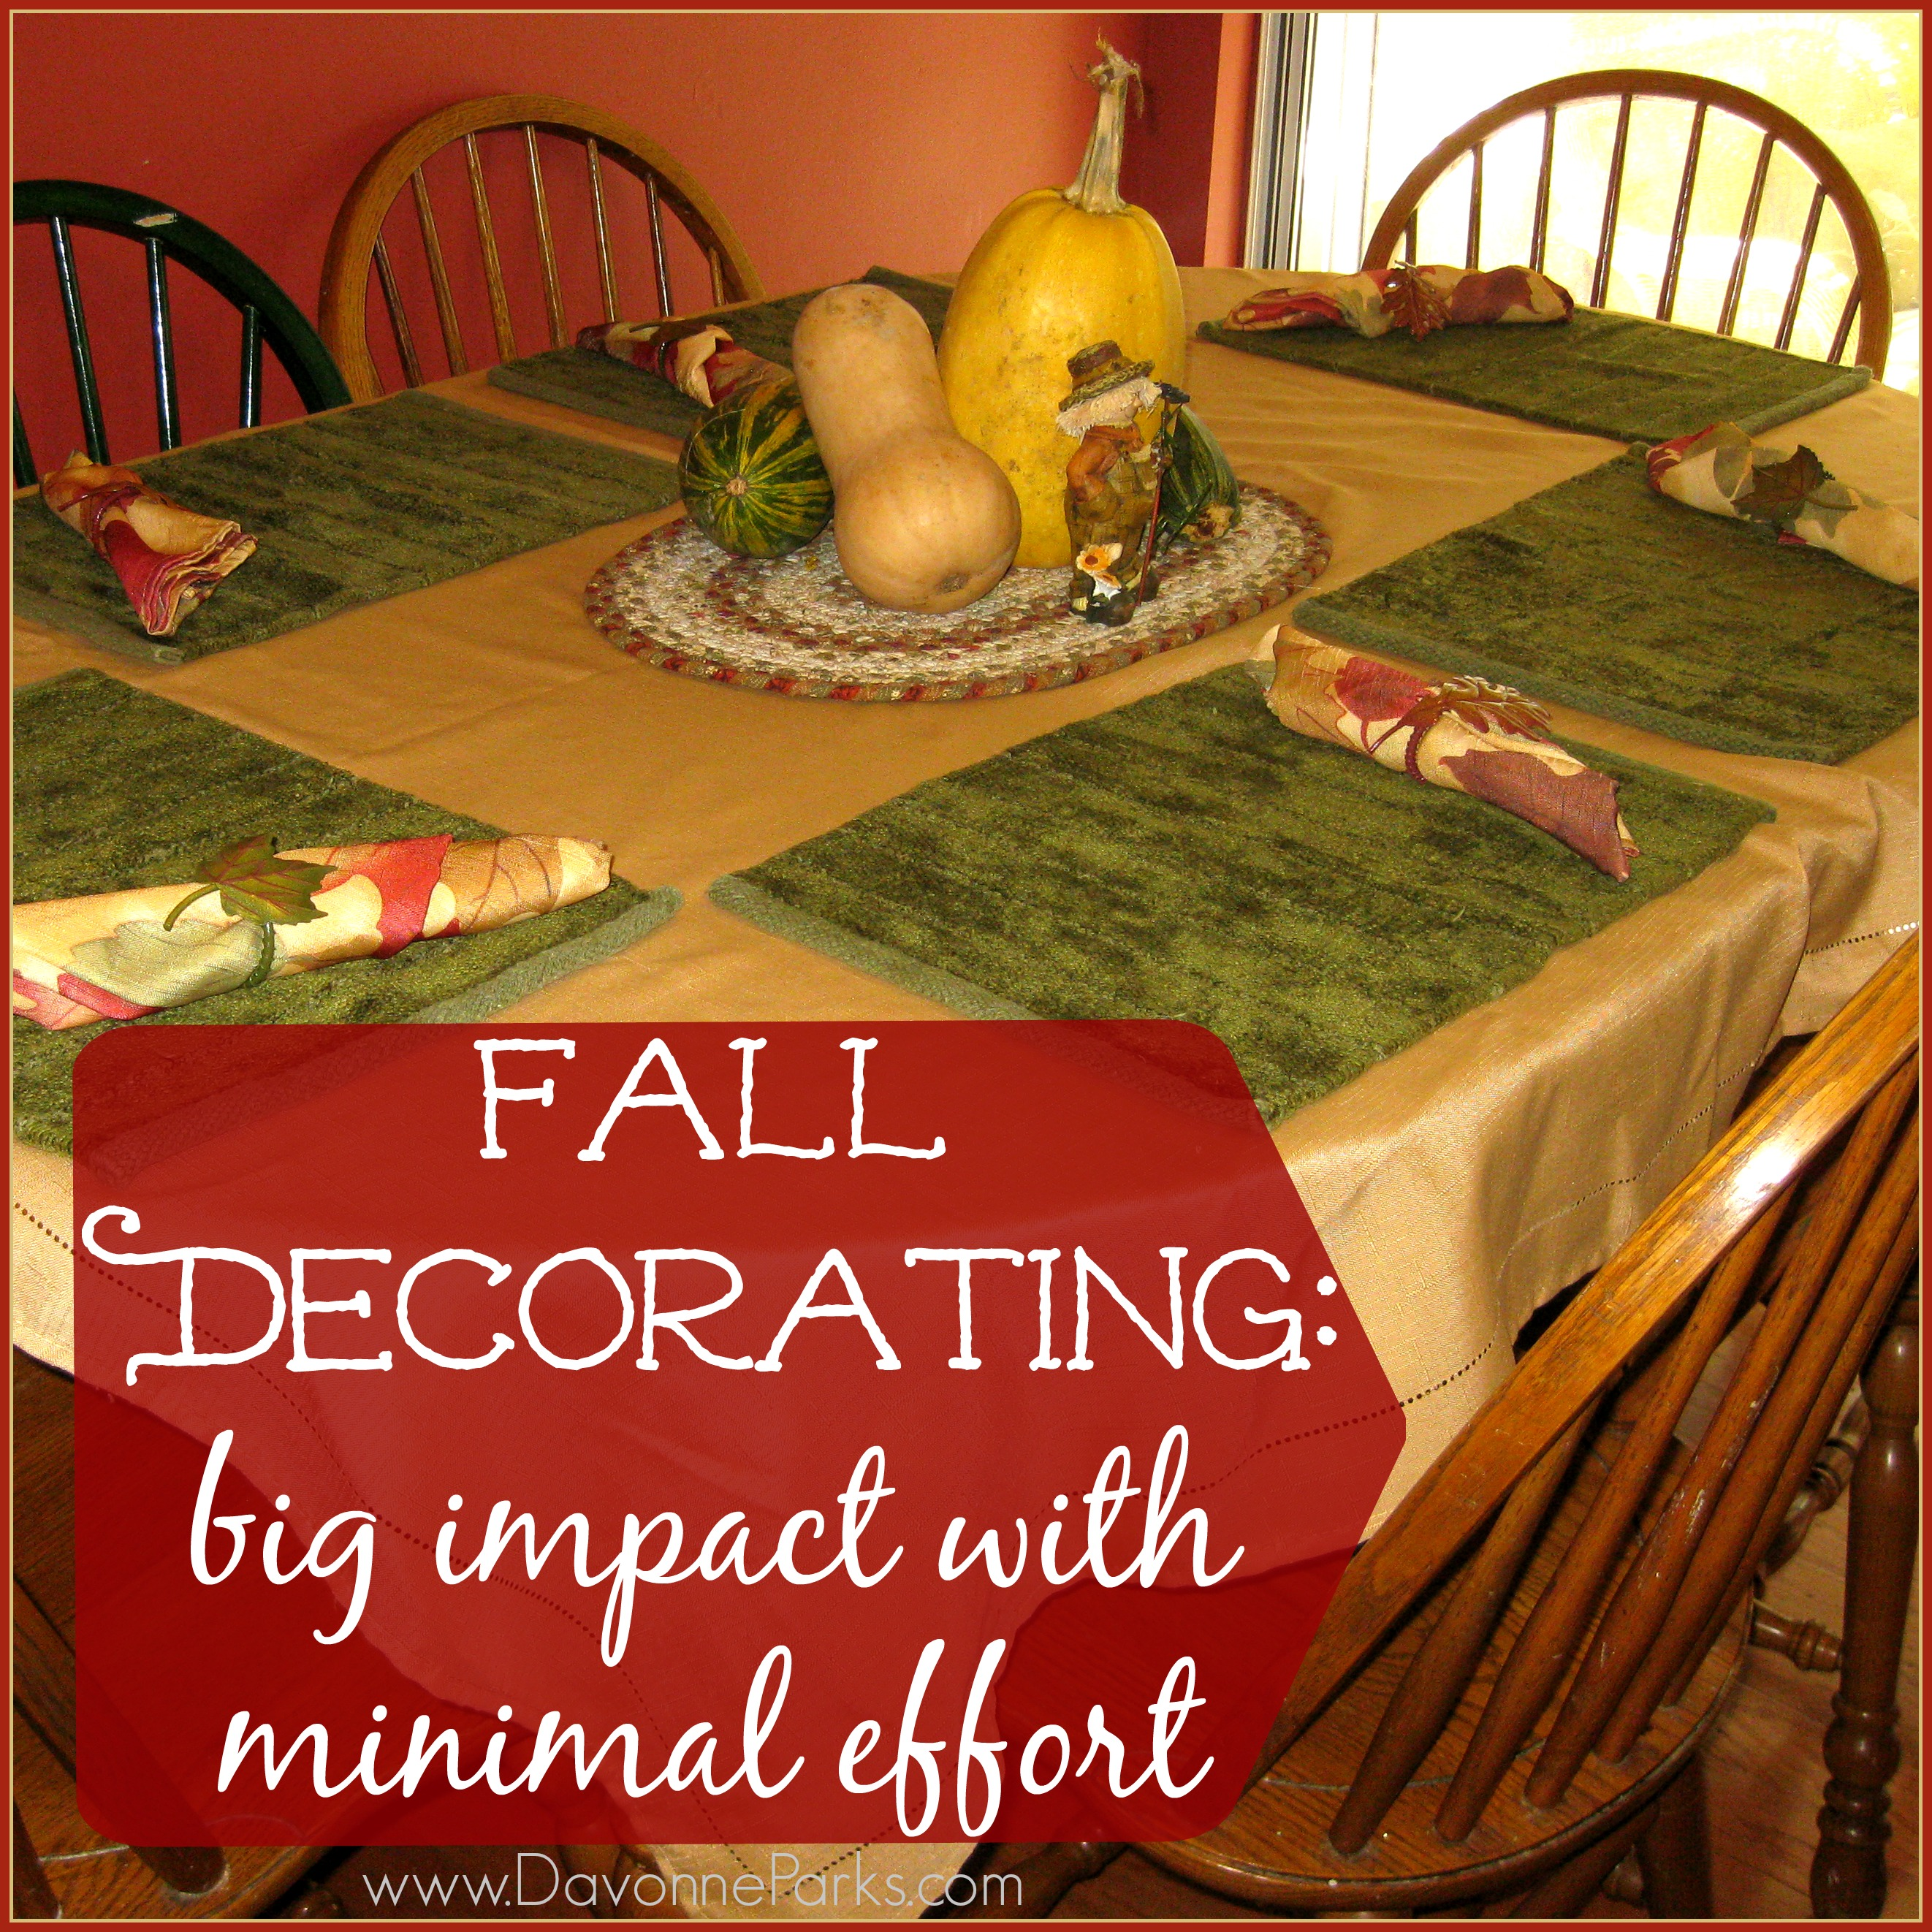 Six simple ways to invite fall into your home